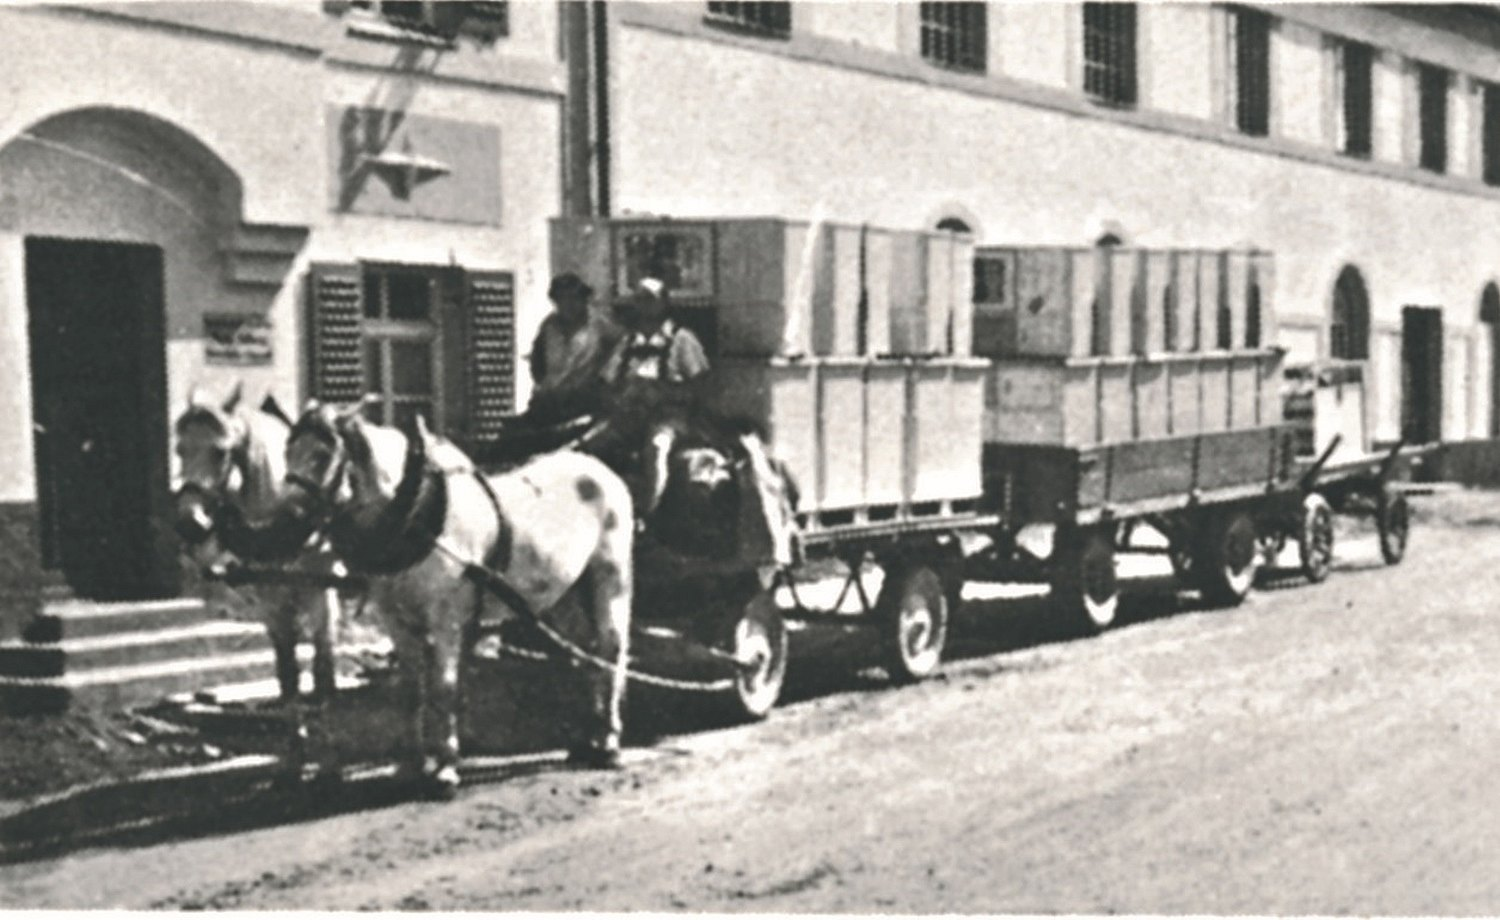 1951: Horse-drawn carriage delivers packaged kitchen sideboards in crates